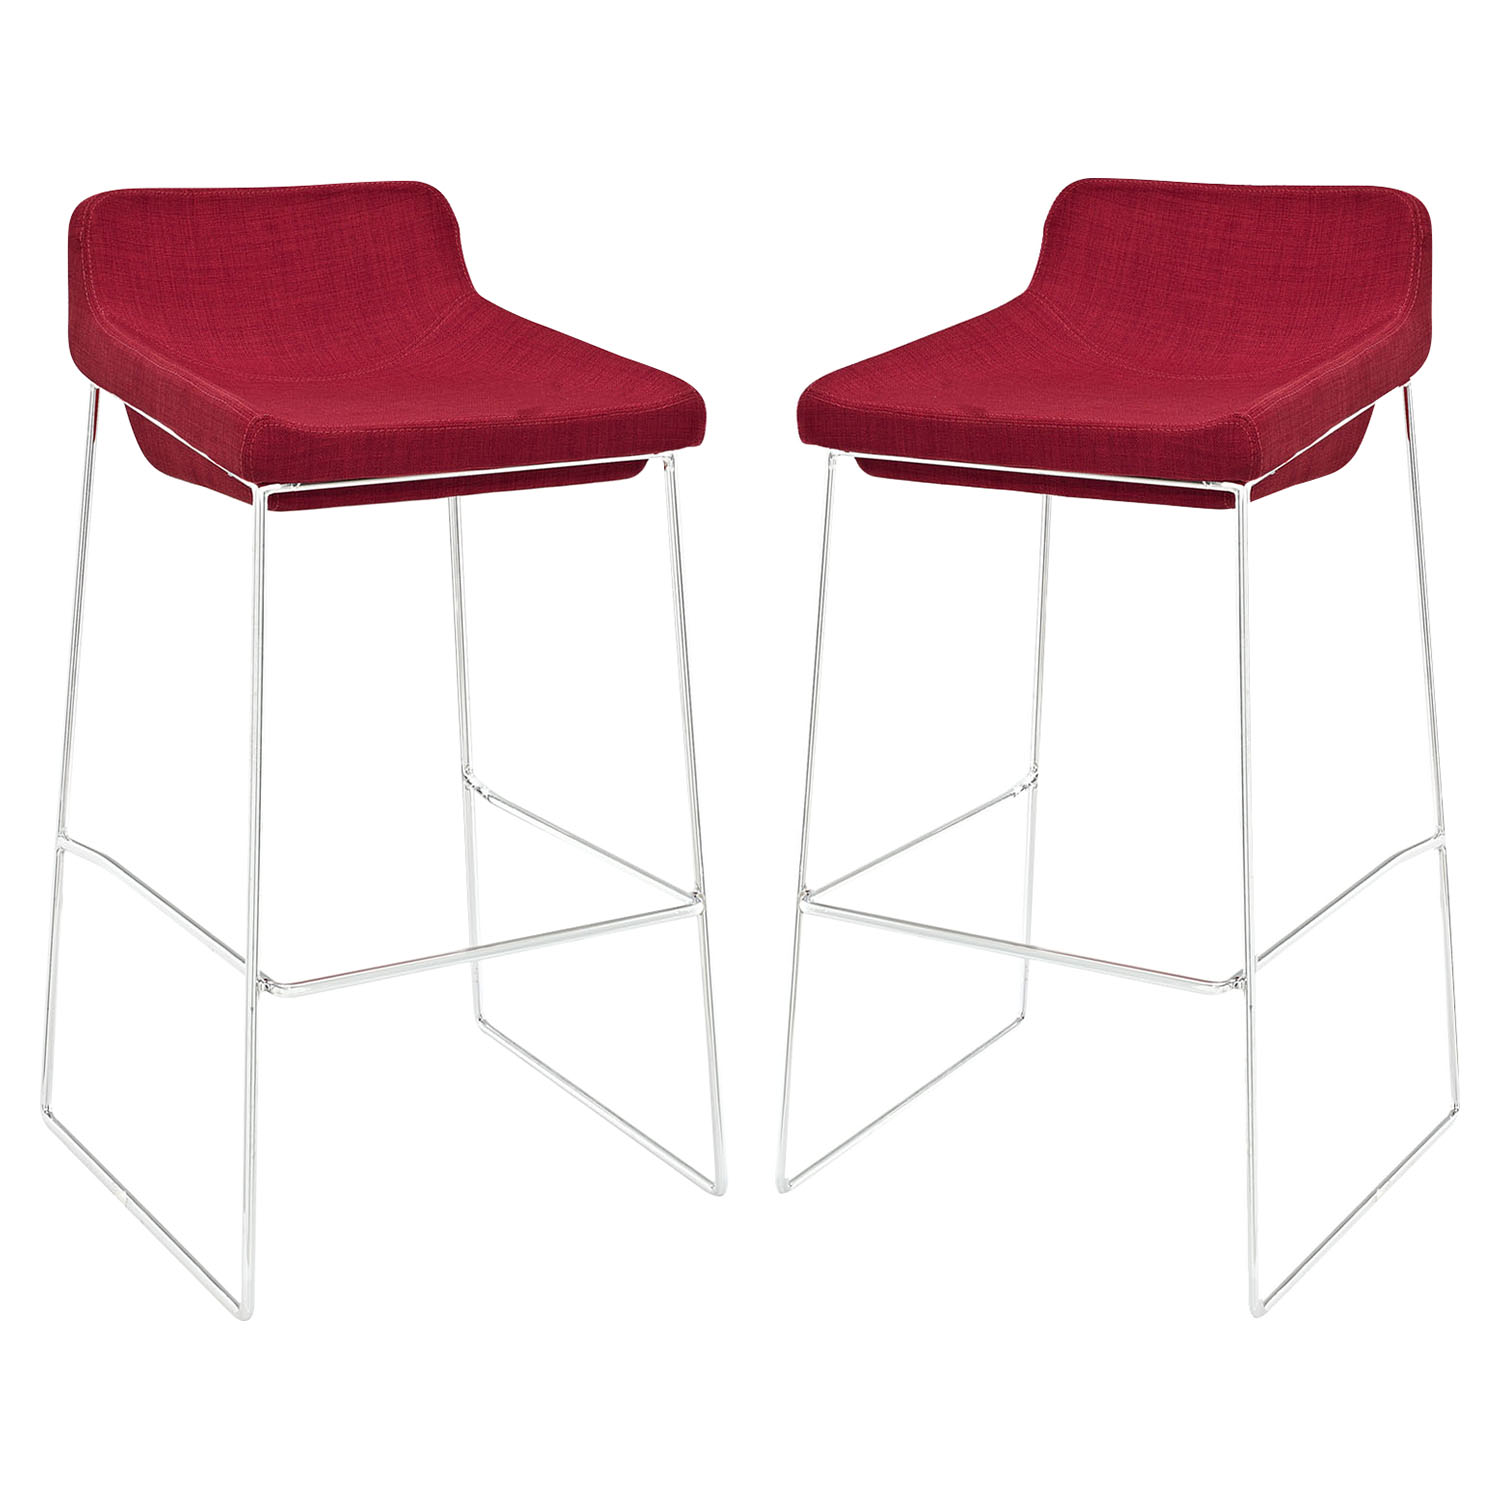 Garner Bar Stool - Backless, Red (Set of 2)